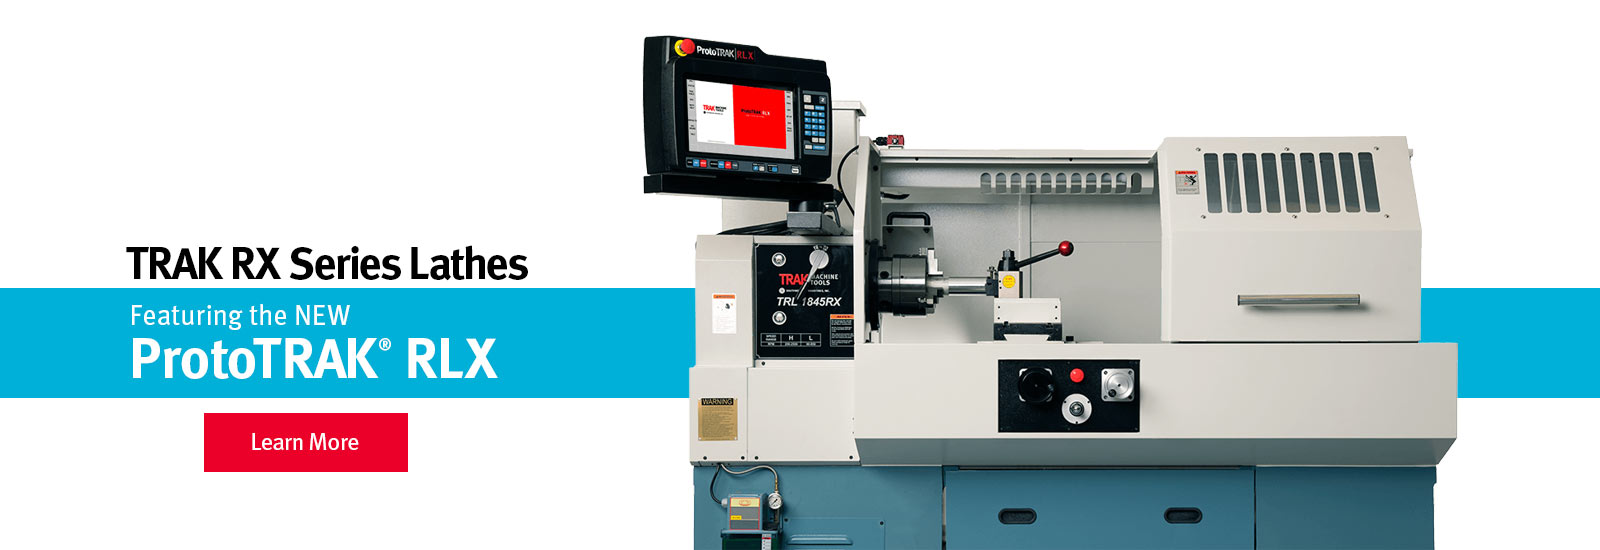 TRAK TRLRX Toolroom Lathes featuring the ProtoTRAK RLX CNC